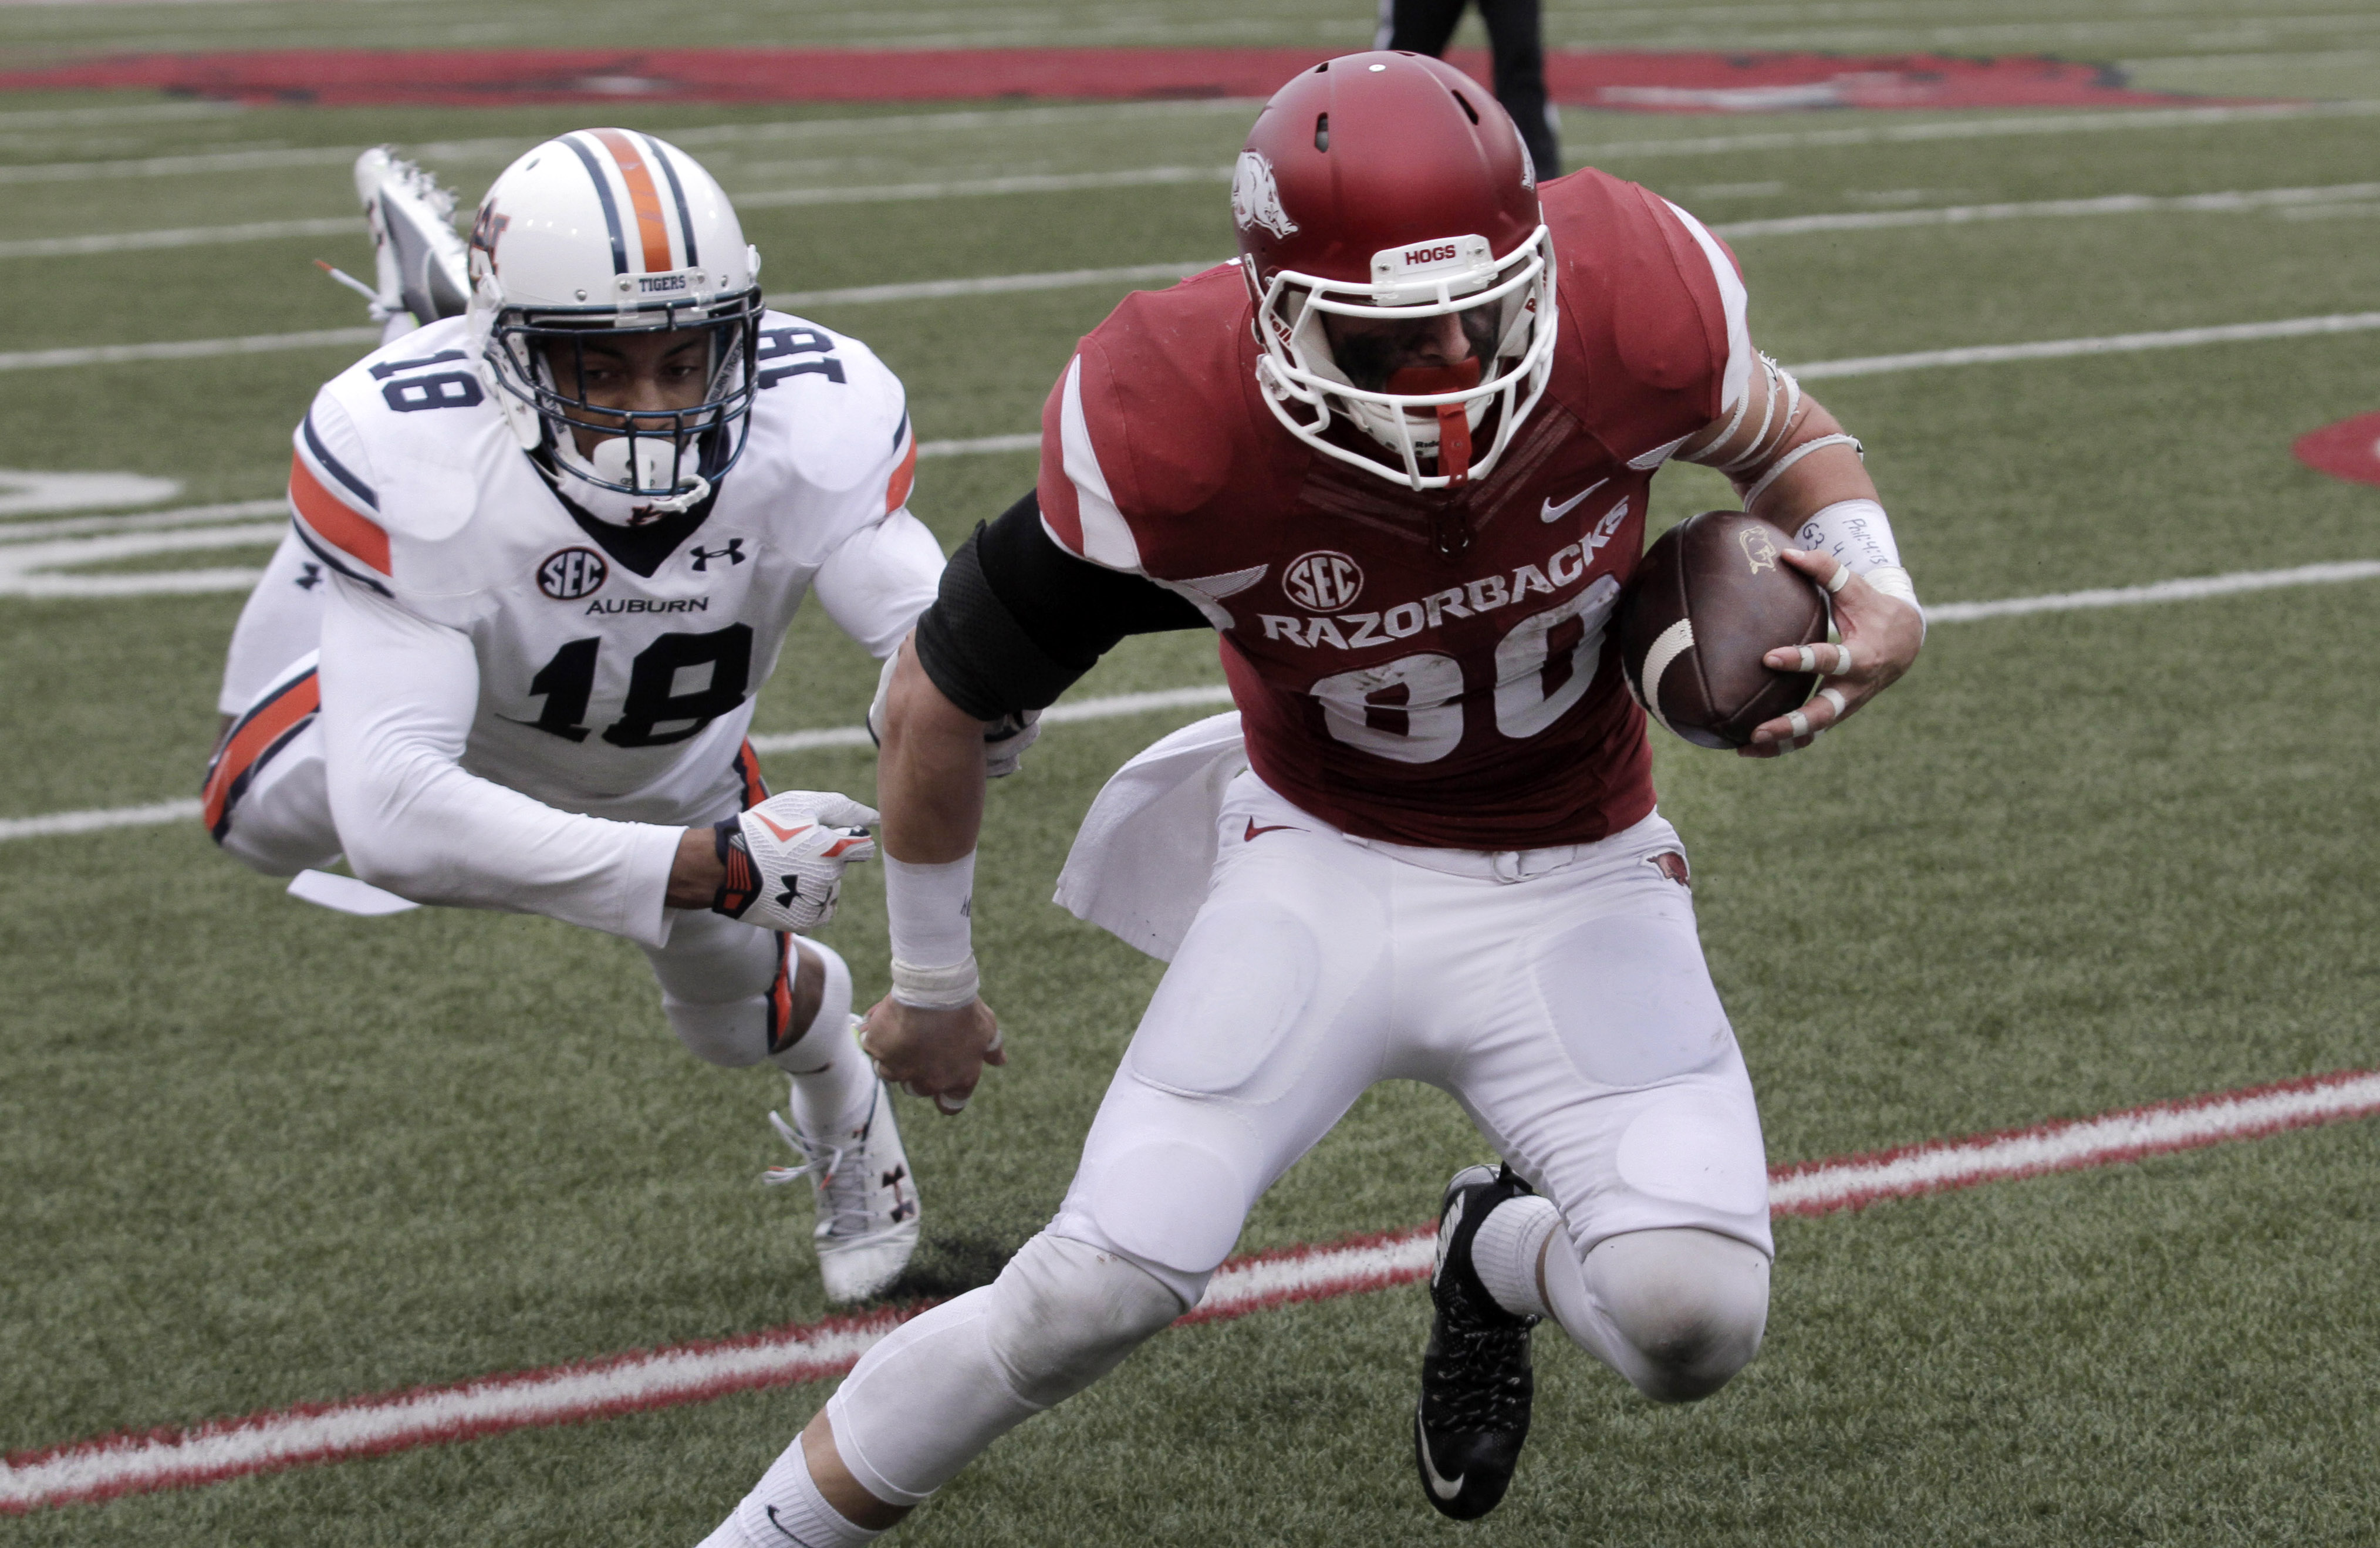 Arkansas' Drew Morgan (80) escapes an attempted tackle by Auburn's Carlton Davis (18) to score a touchdown during the fourth overtime of the NCAA college football game Saturday, Oct. 24, 2015, in Fayetteville, Ark. Arkansas won 54-46 in four overtimes. (A